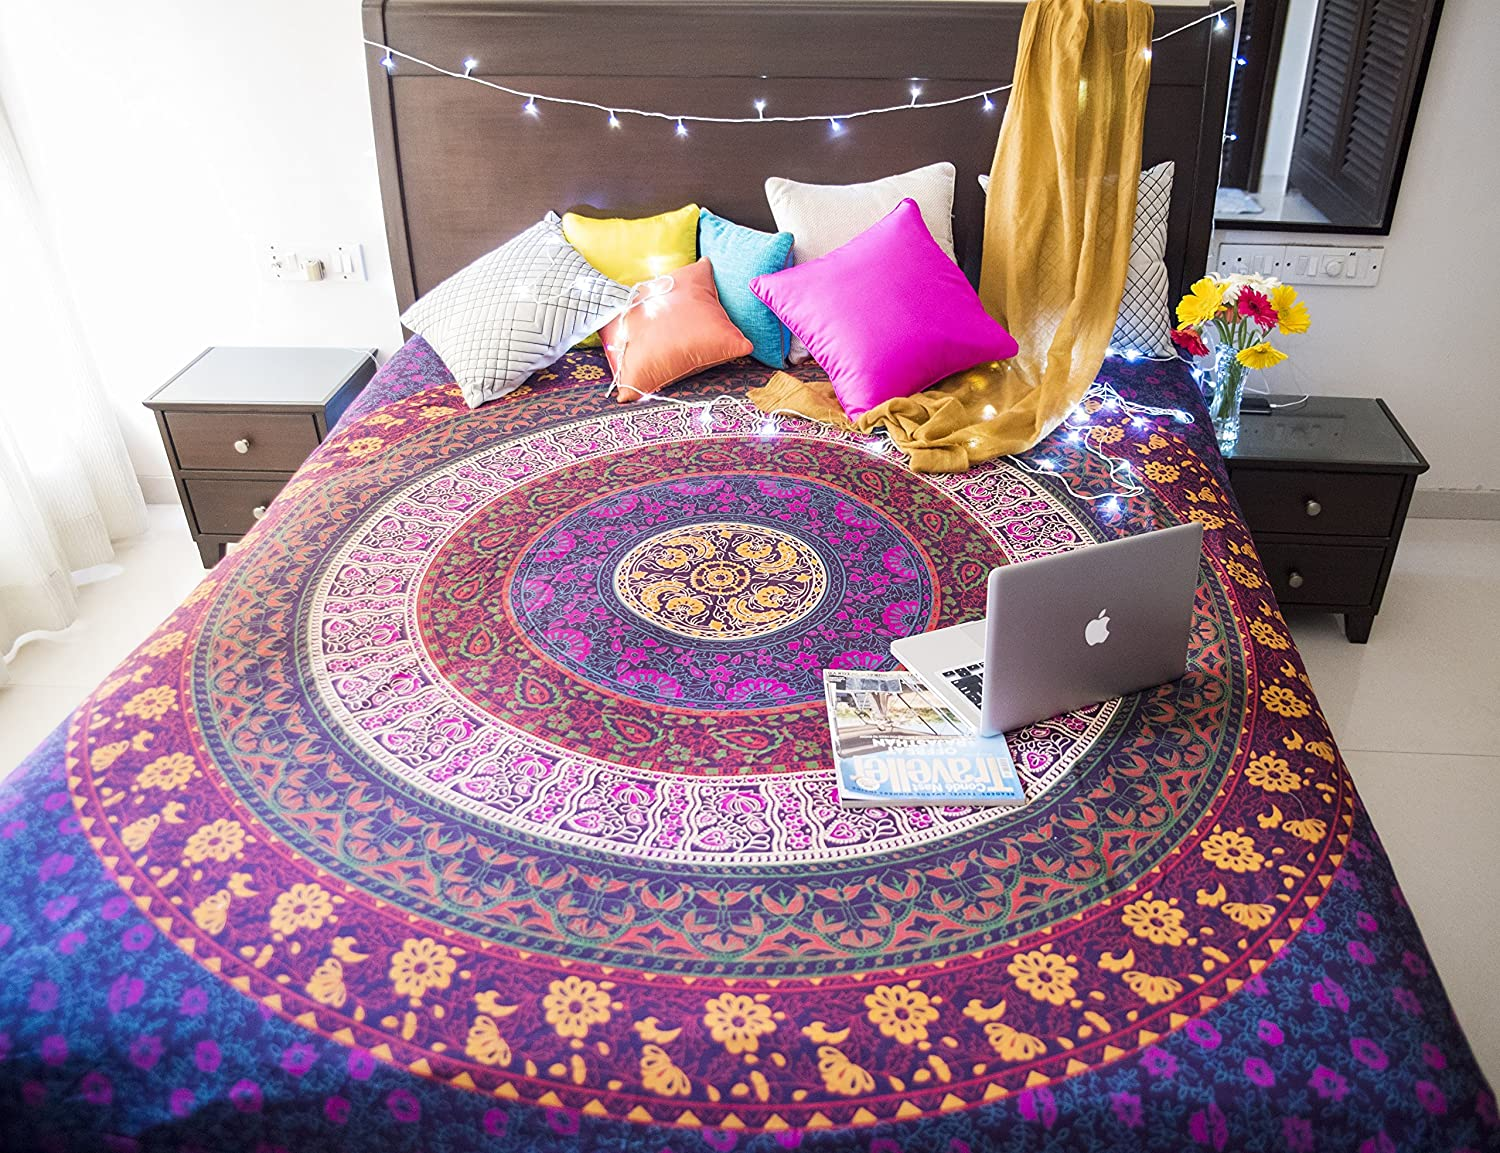 Amazon Folkulture Retro Spectrum Bohemian Hippie Tapestry Wall Hanging For College Dorm Room Indian Mandala Floral Bedding Bedspread Bedroom Or